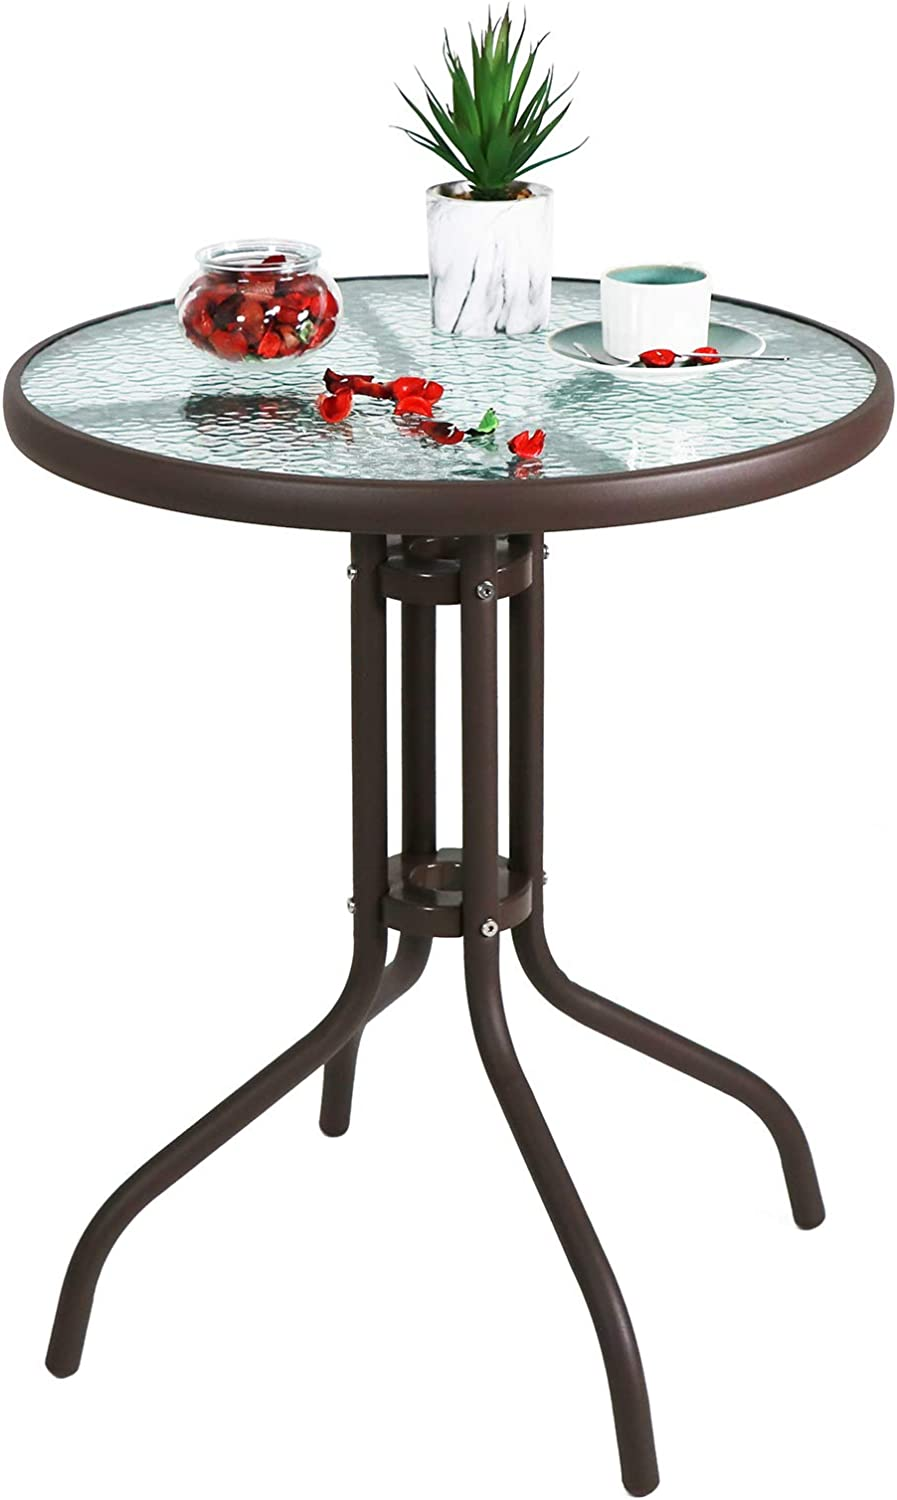 "Love & Peace 24"" x 24"" Outdoor Bistro Table Metal Round Patio Side Table Outdoor Coffee Table Furniture Garden Backyard Dining Table, W/Elegant Water Ripple Glass Table Top, Brown: Kitchen & Dining"